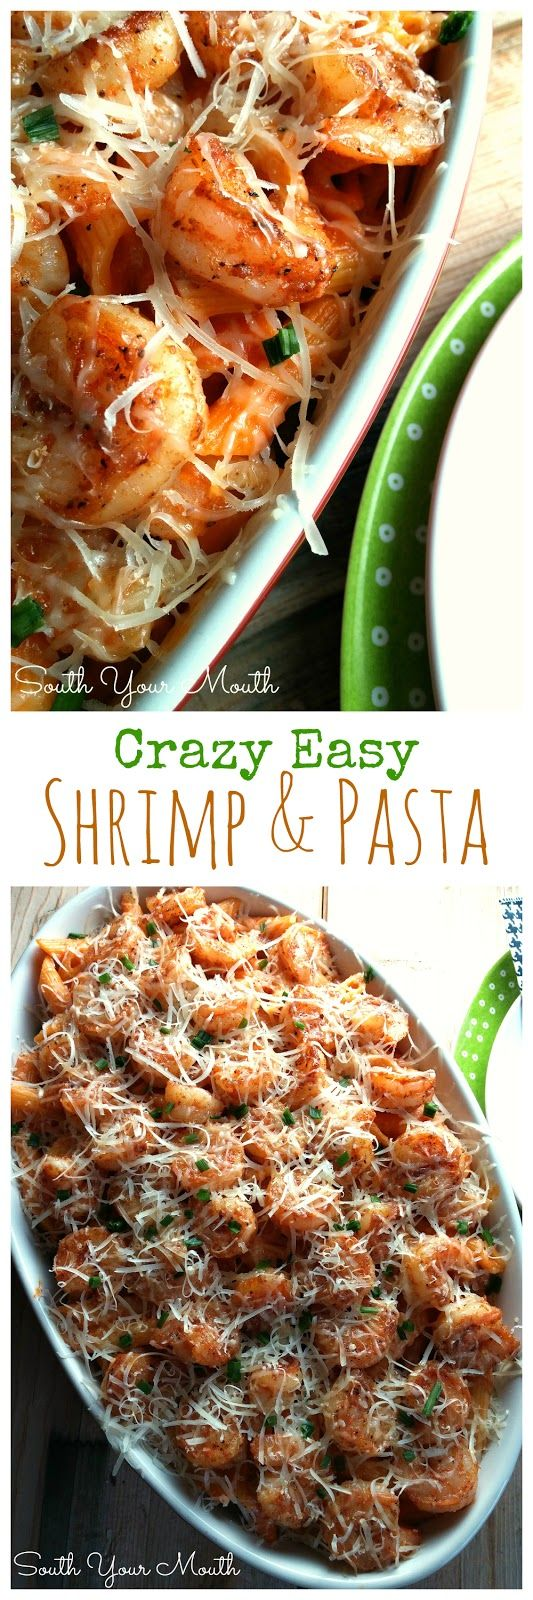 South Your Mouth: Easy Shrimp with Pasta